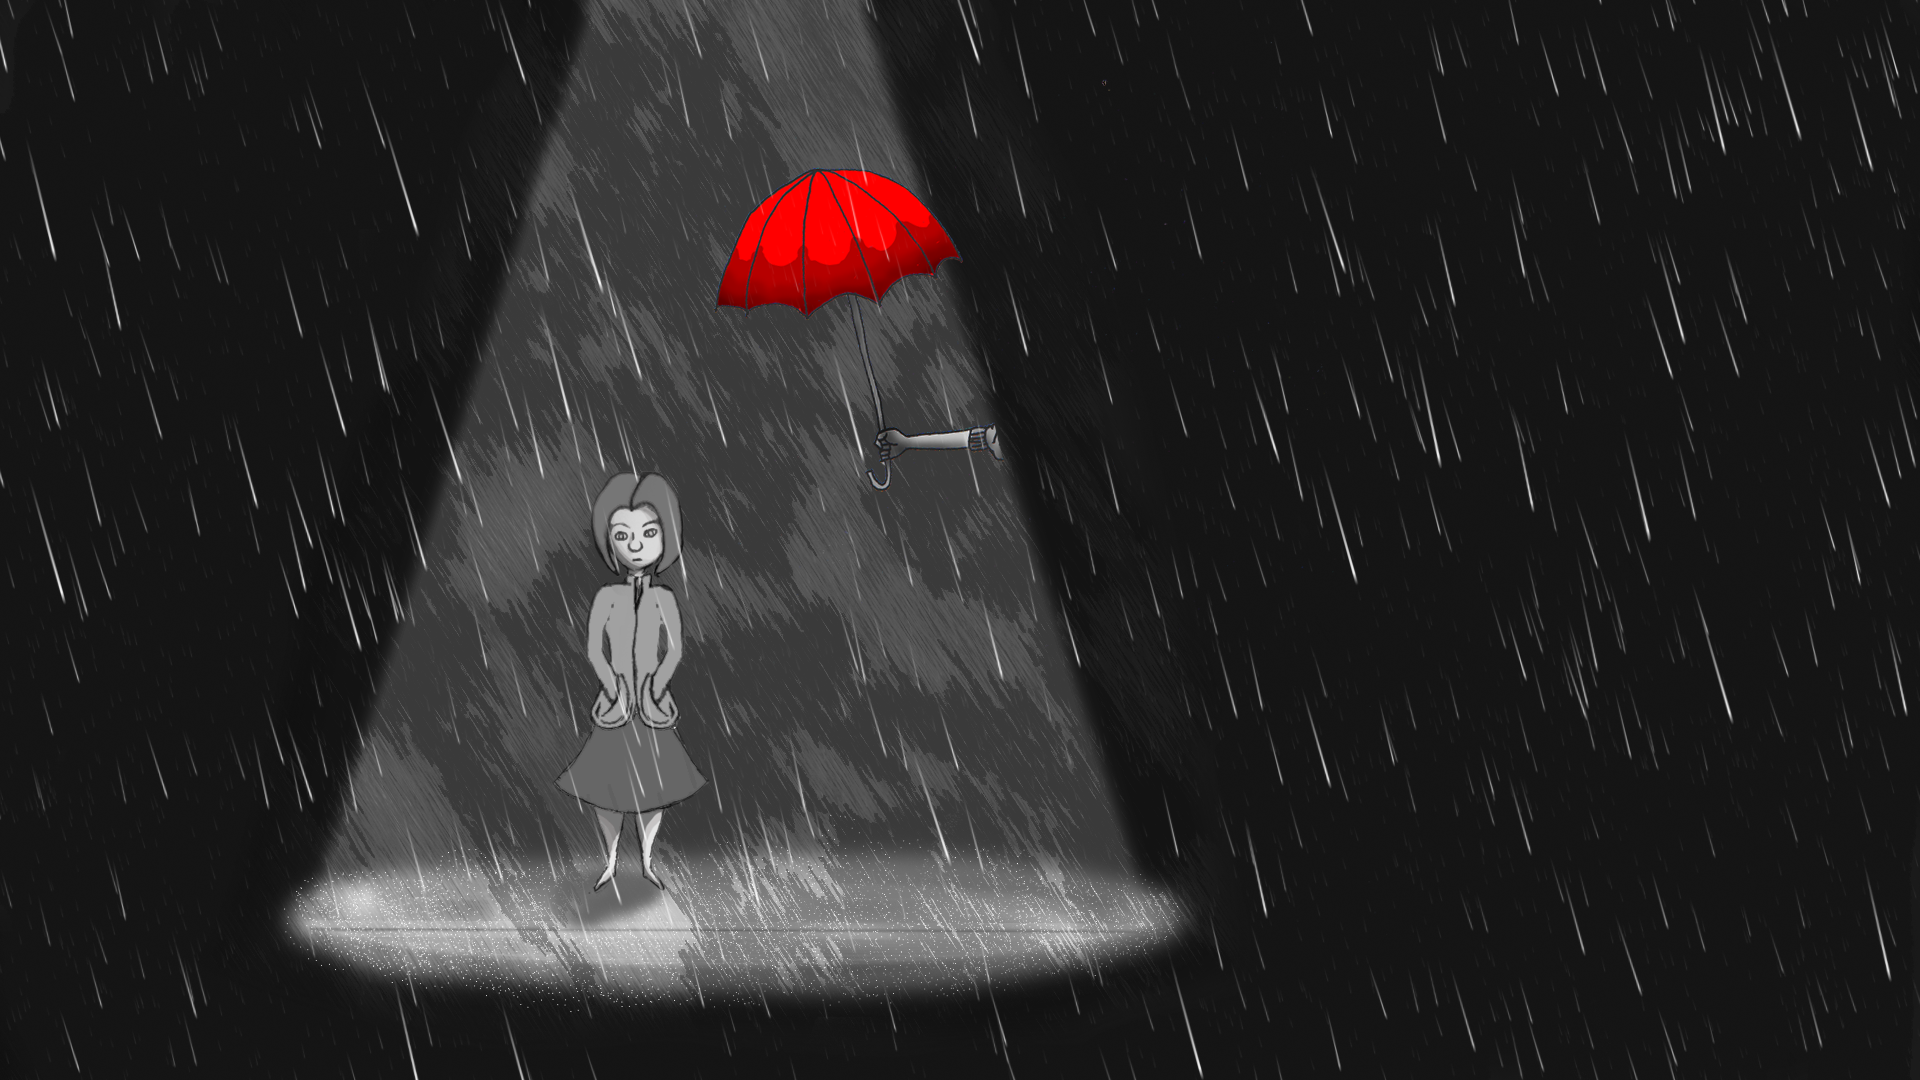 In the Rain - image 3 - student project